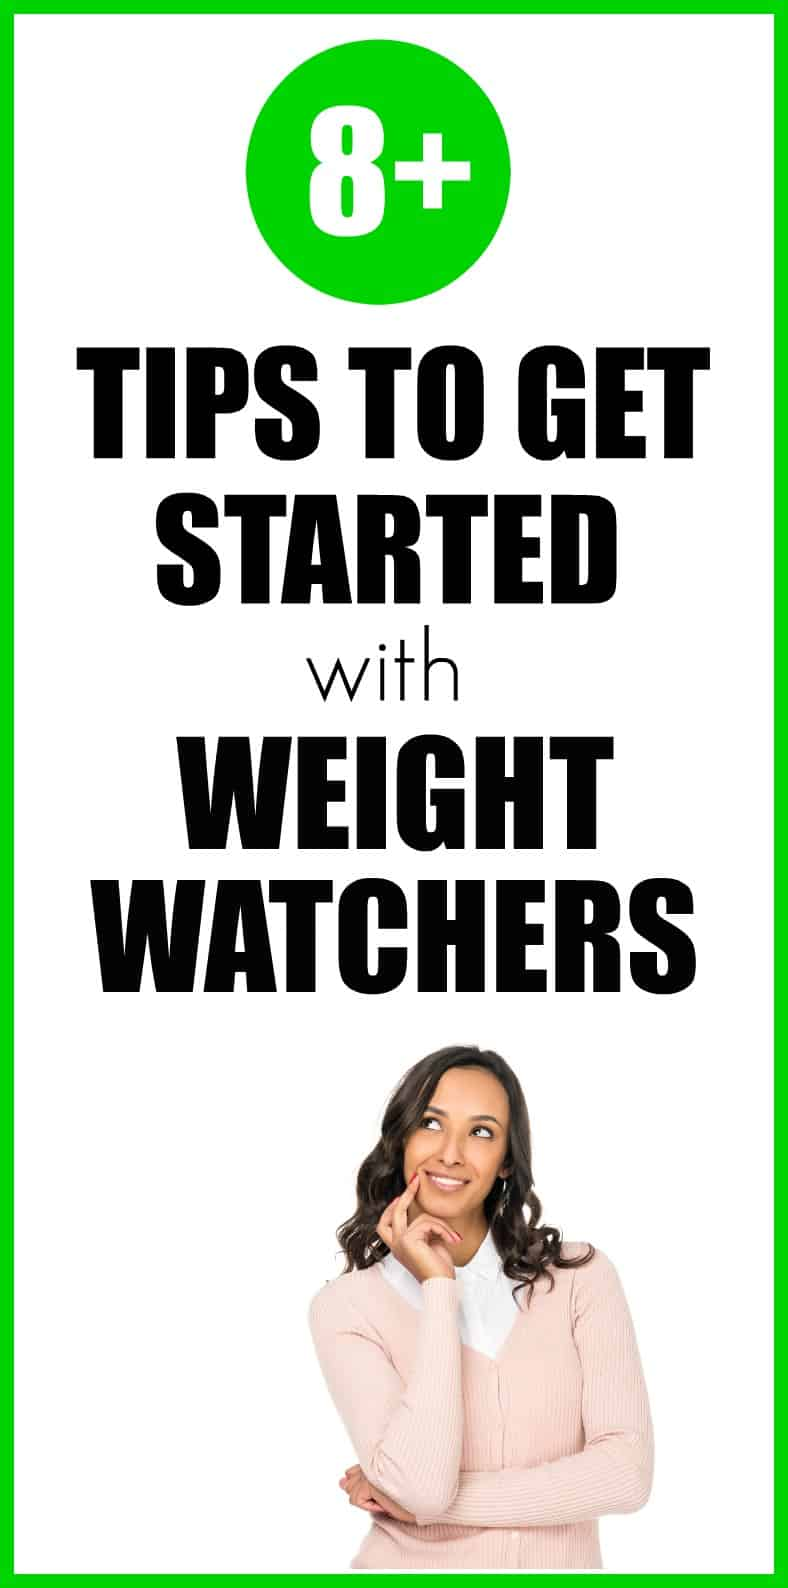 Tips to Get Started With Weight Watchers. #WW #WeightWatchers